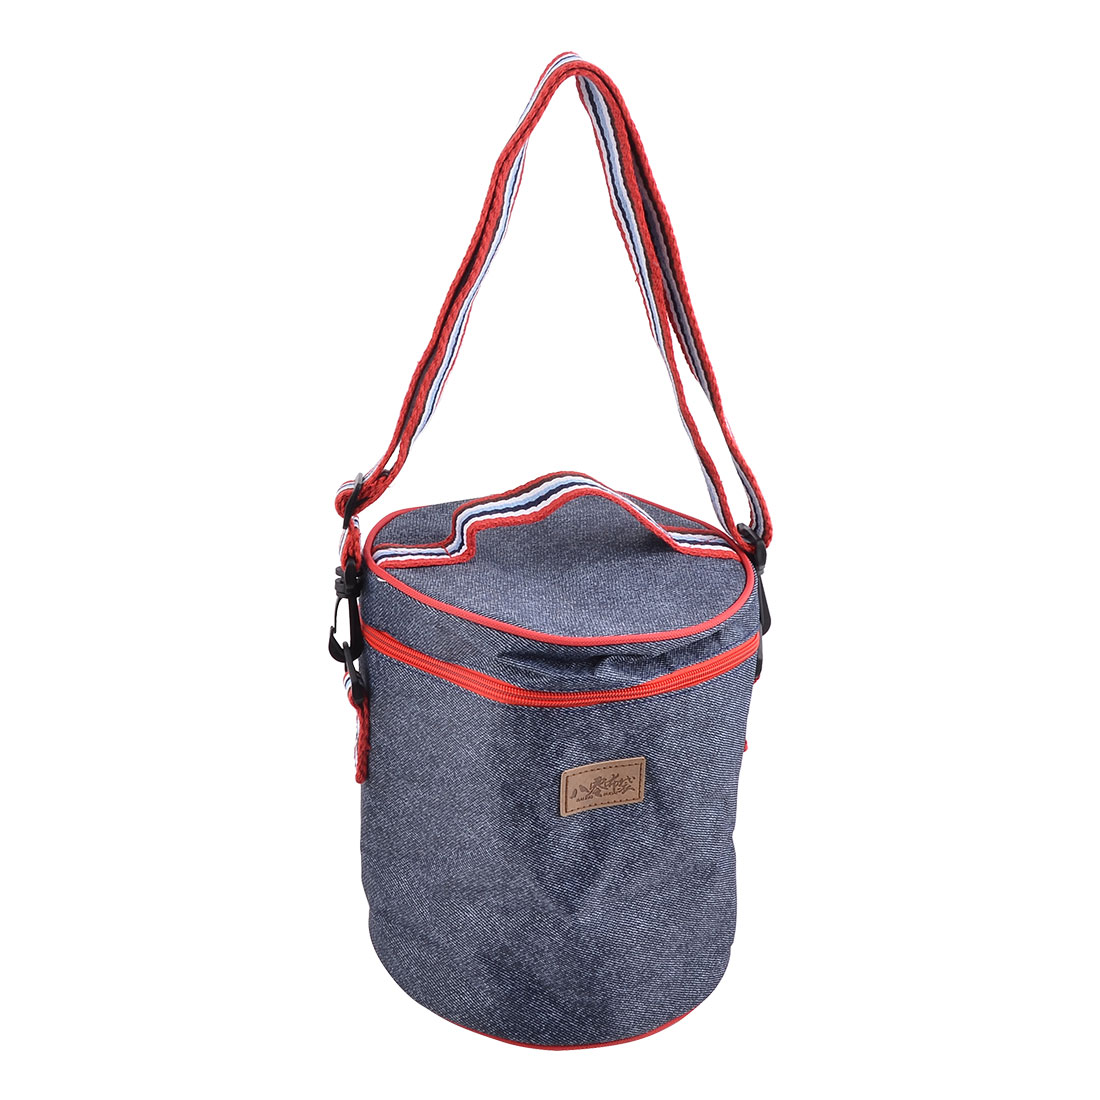 Outside Oxford Fabric Zipper Closure Insulated Drinking Cooler Bag Dark Blue